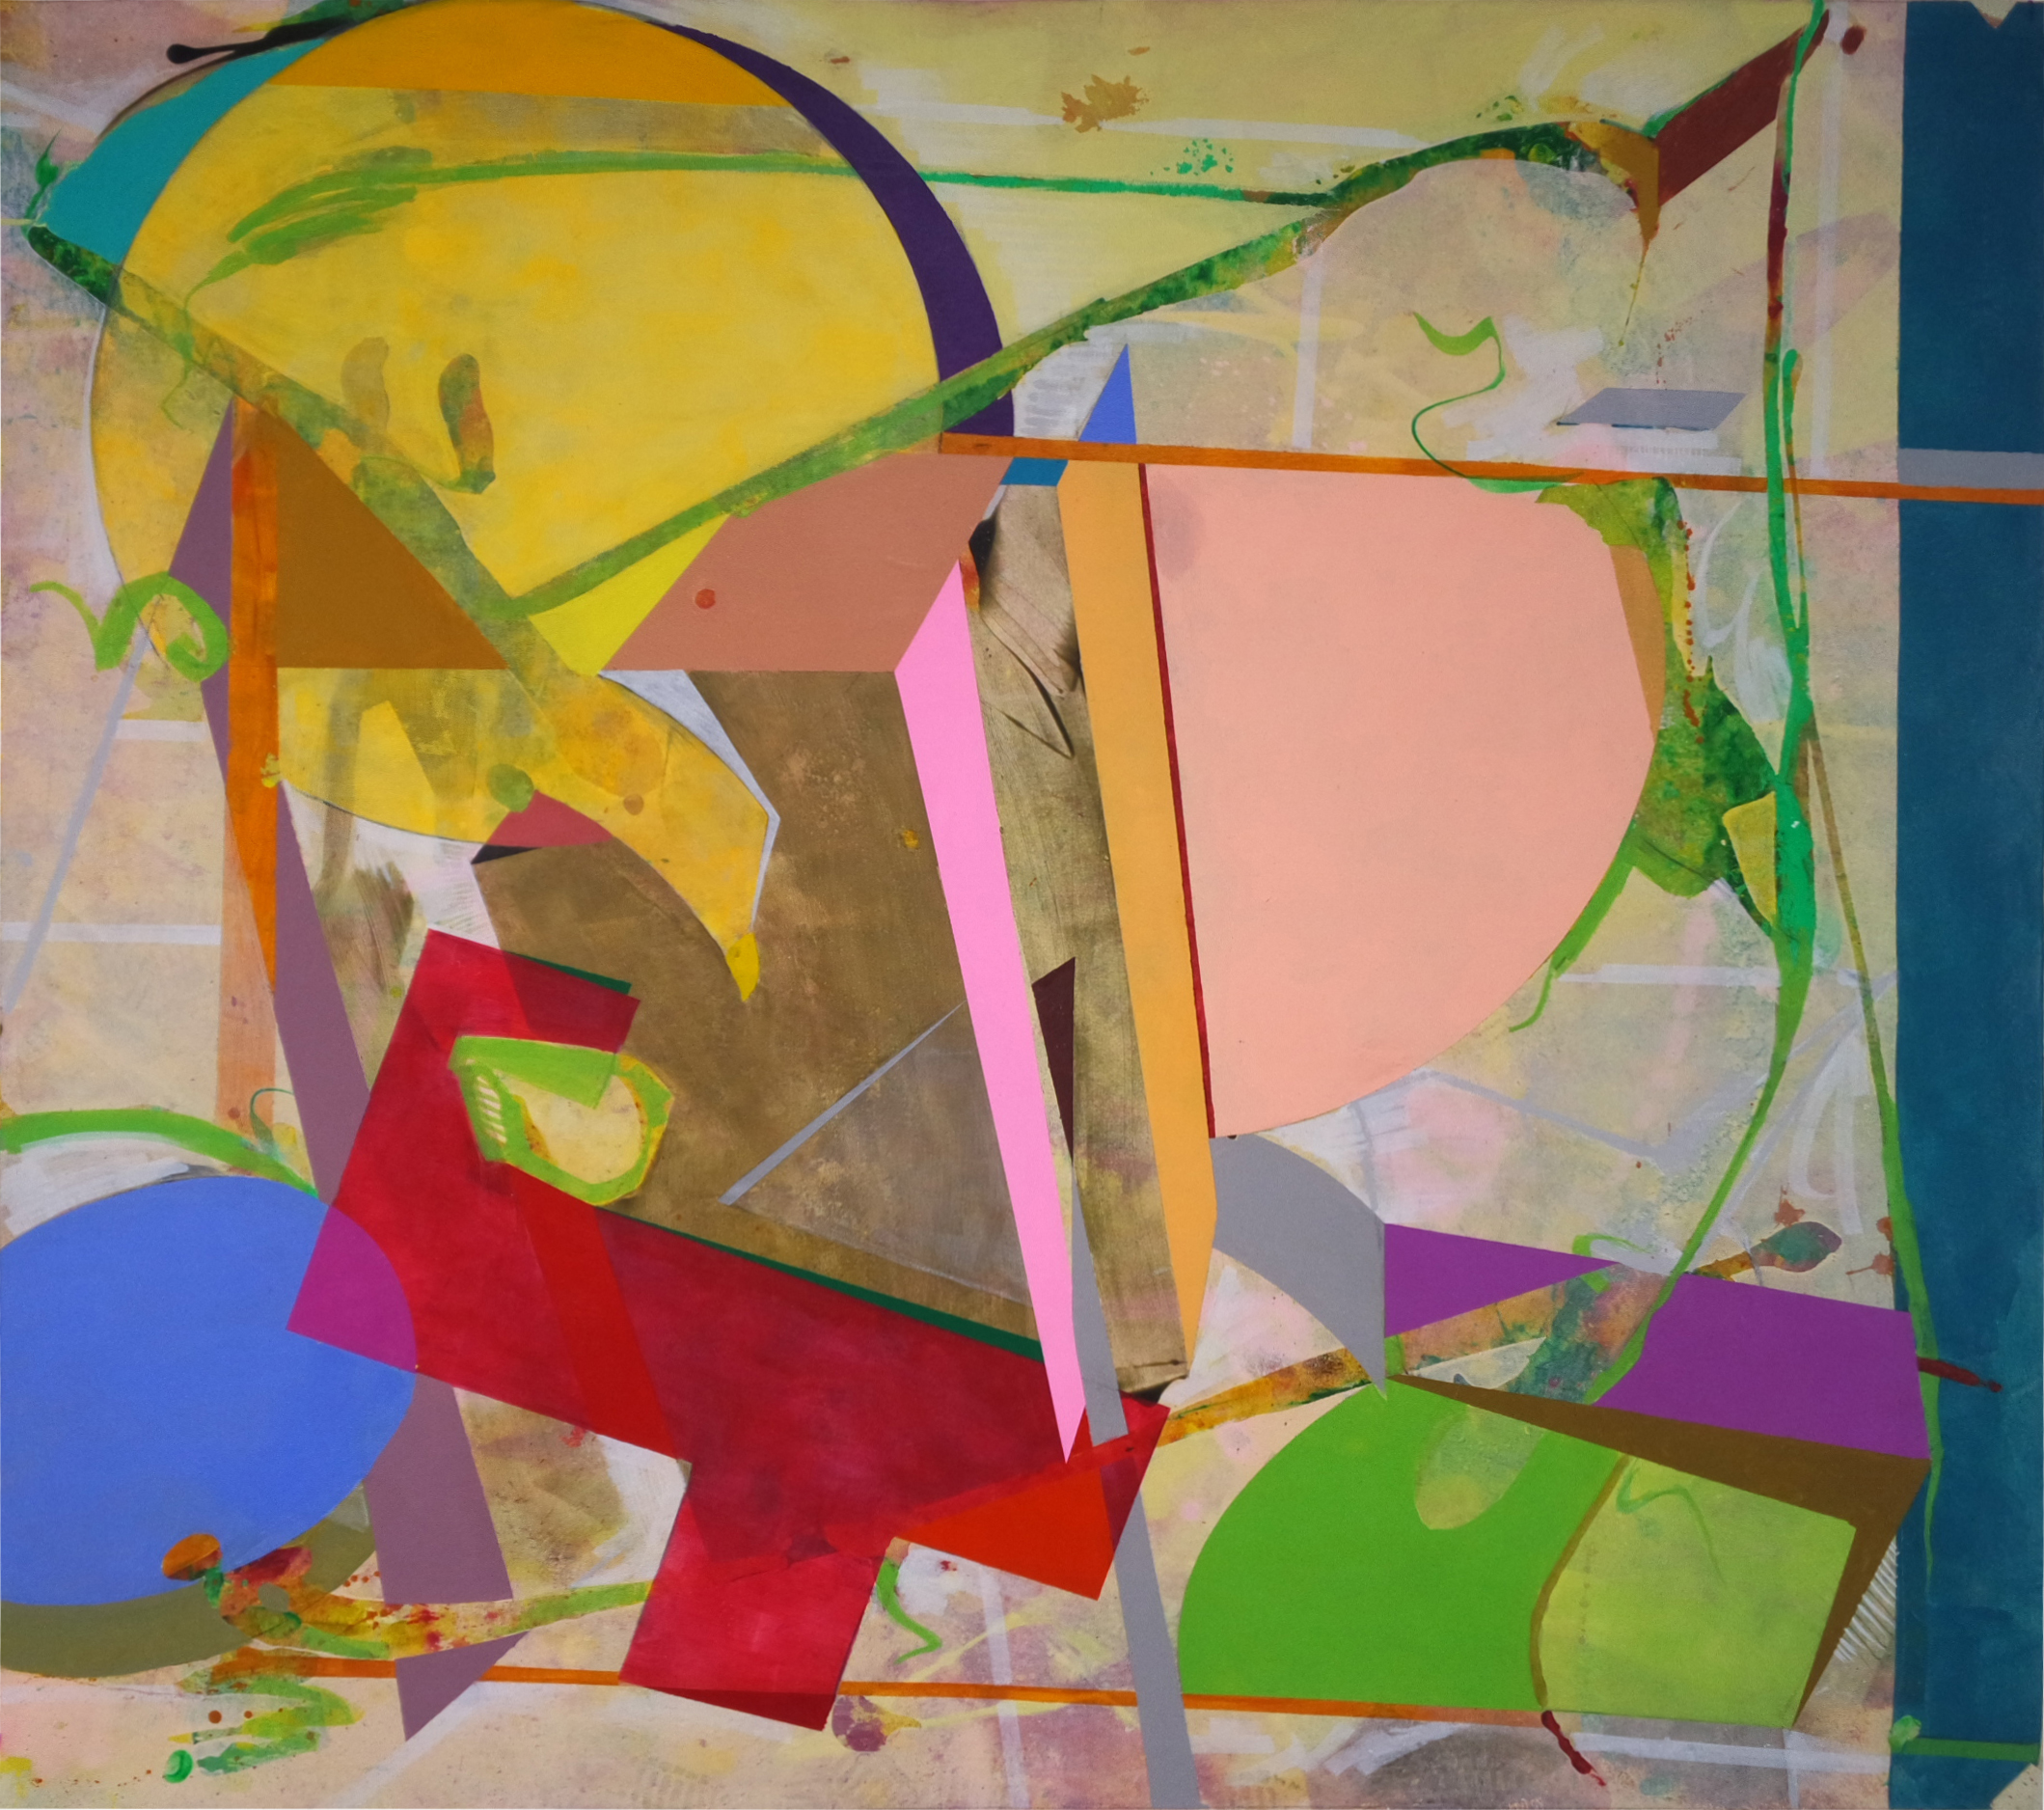 Homestead Campus Showcases Paintings By Gerardo Olhovich The